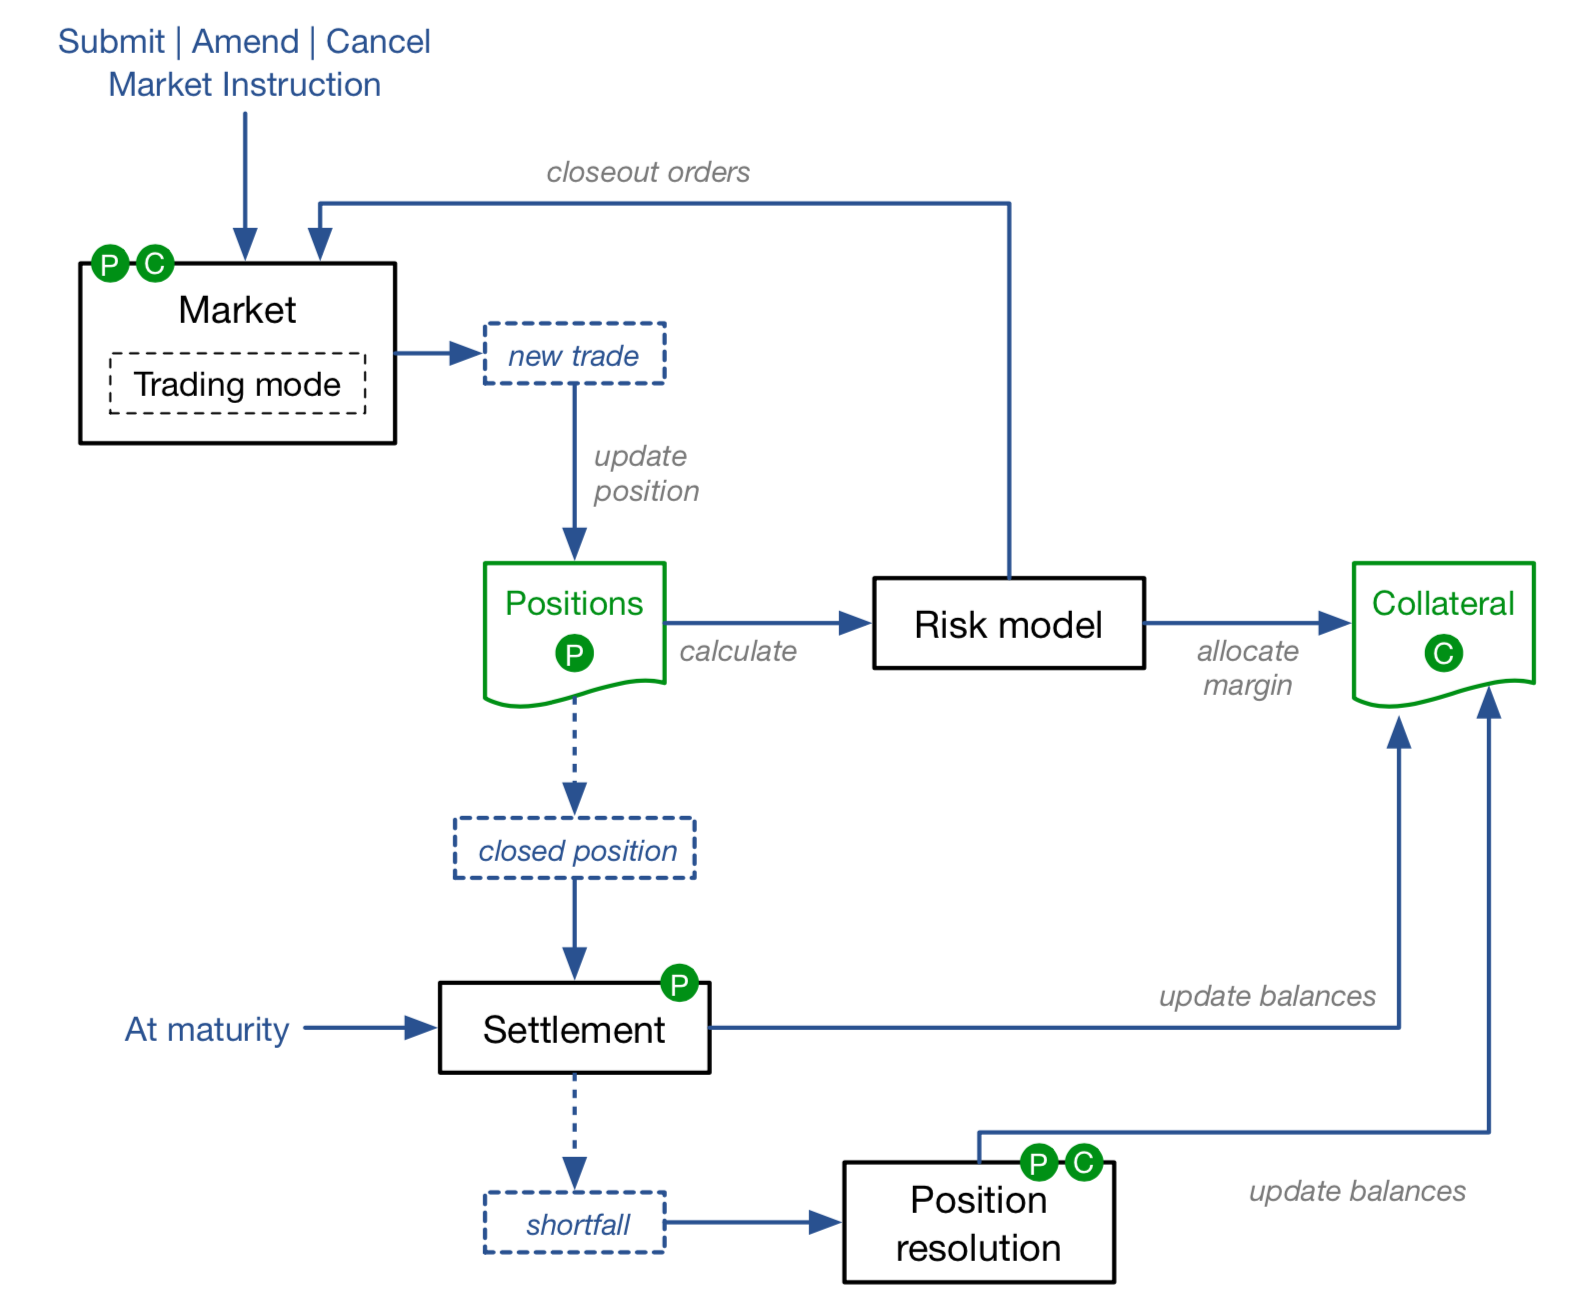 A flow chart mapping Vega's fully automated trading and settlement workflow